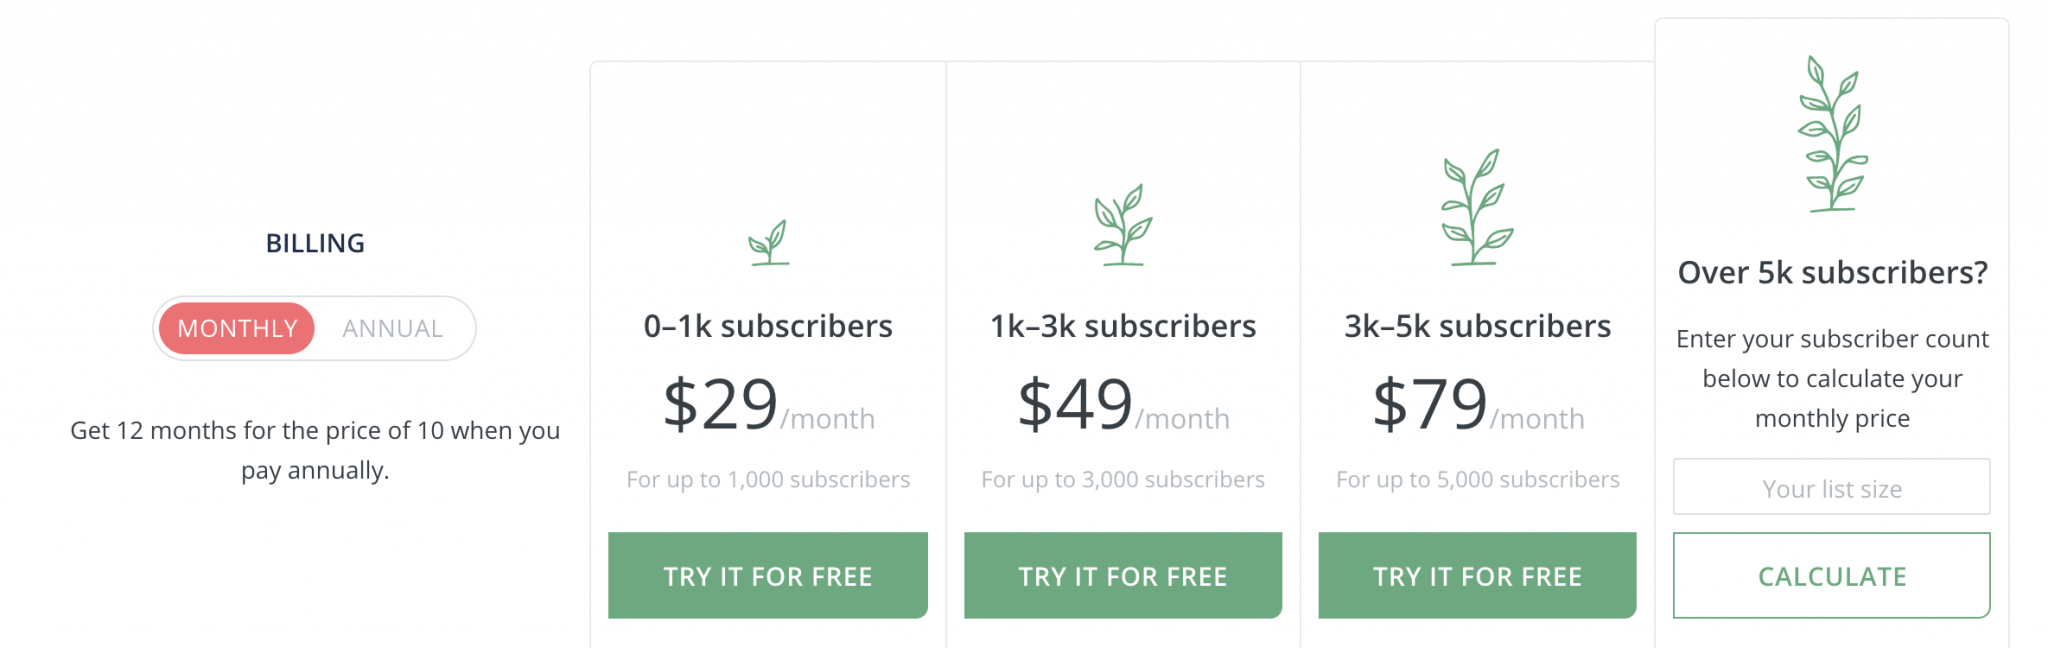 Convertkit Deals Labor Day May